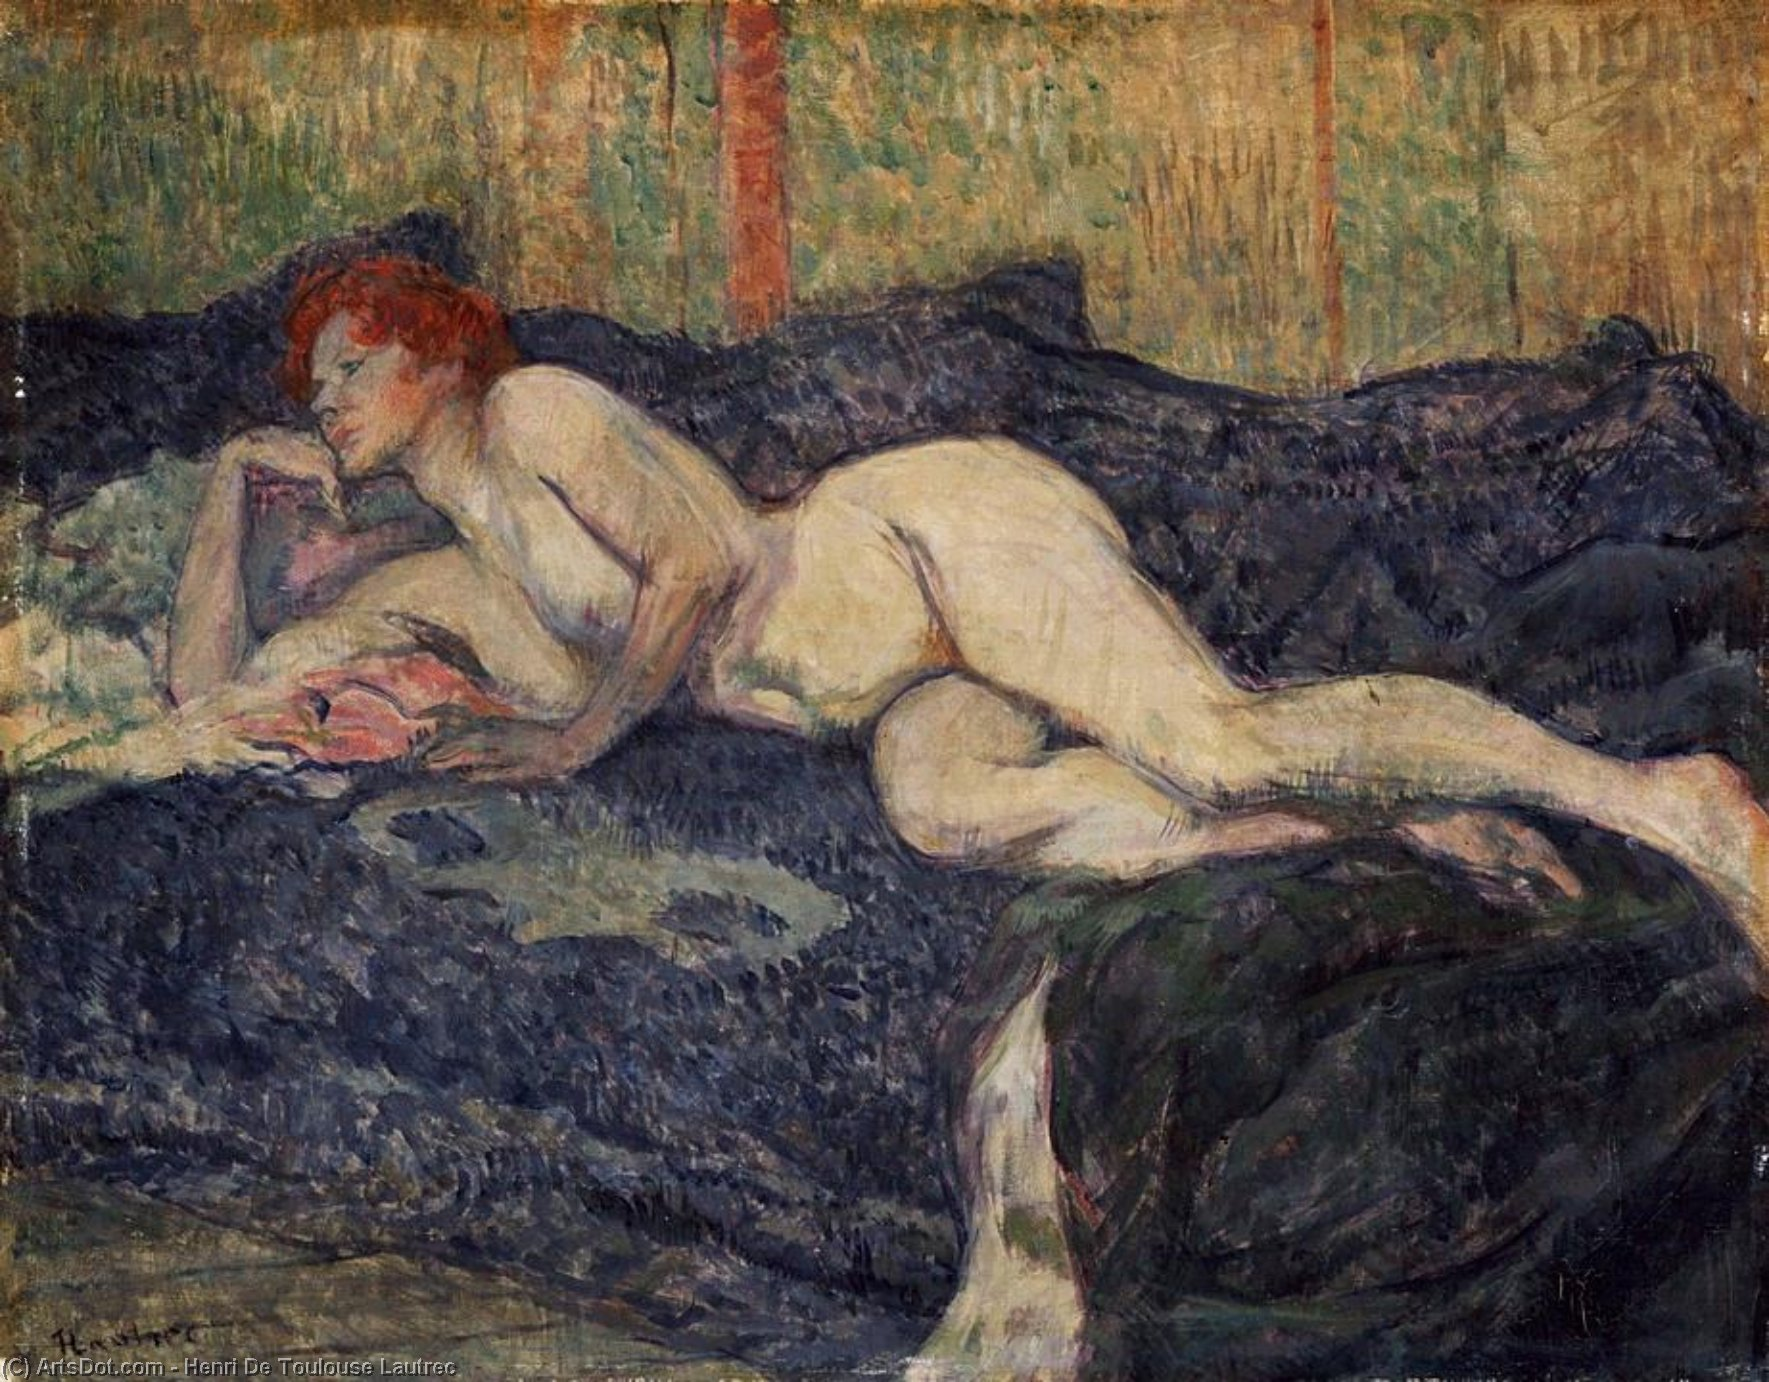 Reclining nude, 1897 by Henri De Toulouse Lautrec (1864-1901, France)